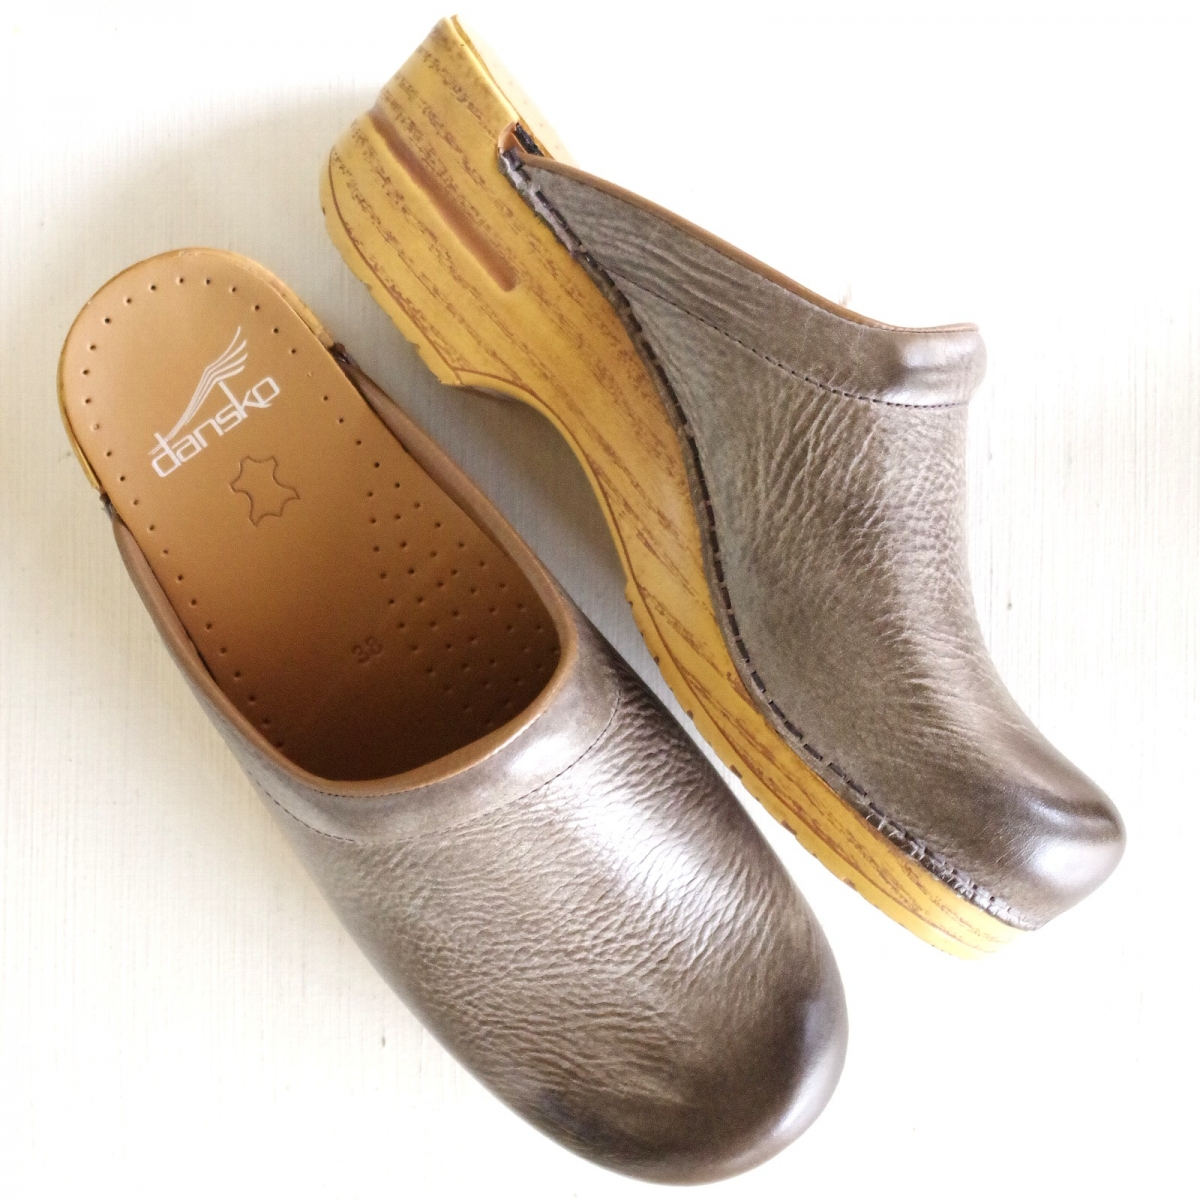 ダンスコ ソンヤ Dansko Sonja Stone Distressed / Natural Sole